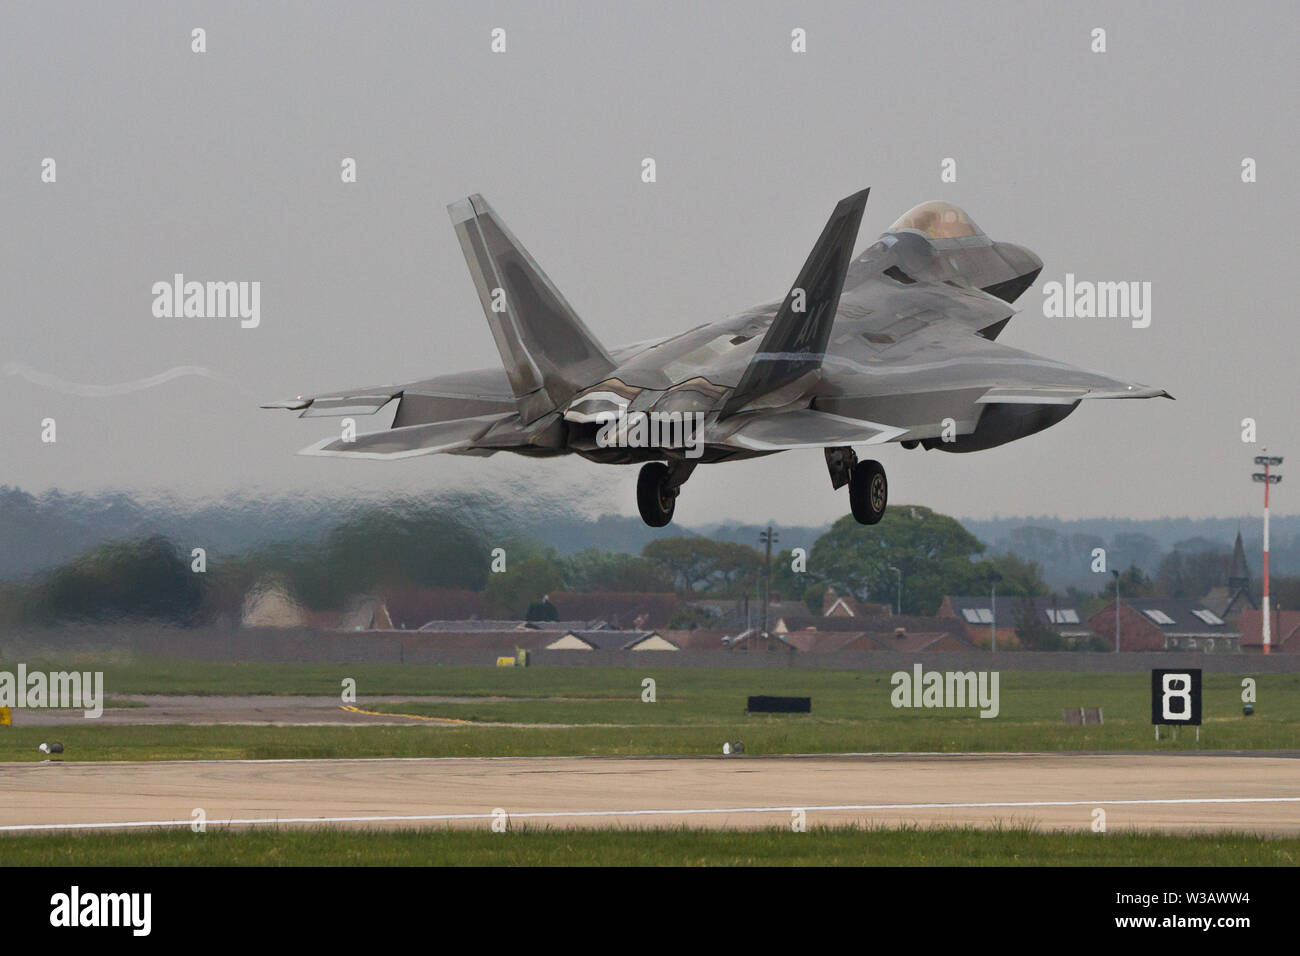 F-22 Raptor about to touch down as it lands at RAF Mildenhall. - Stock Image